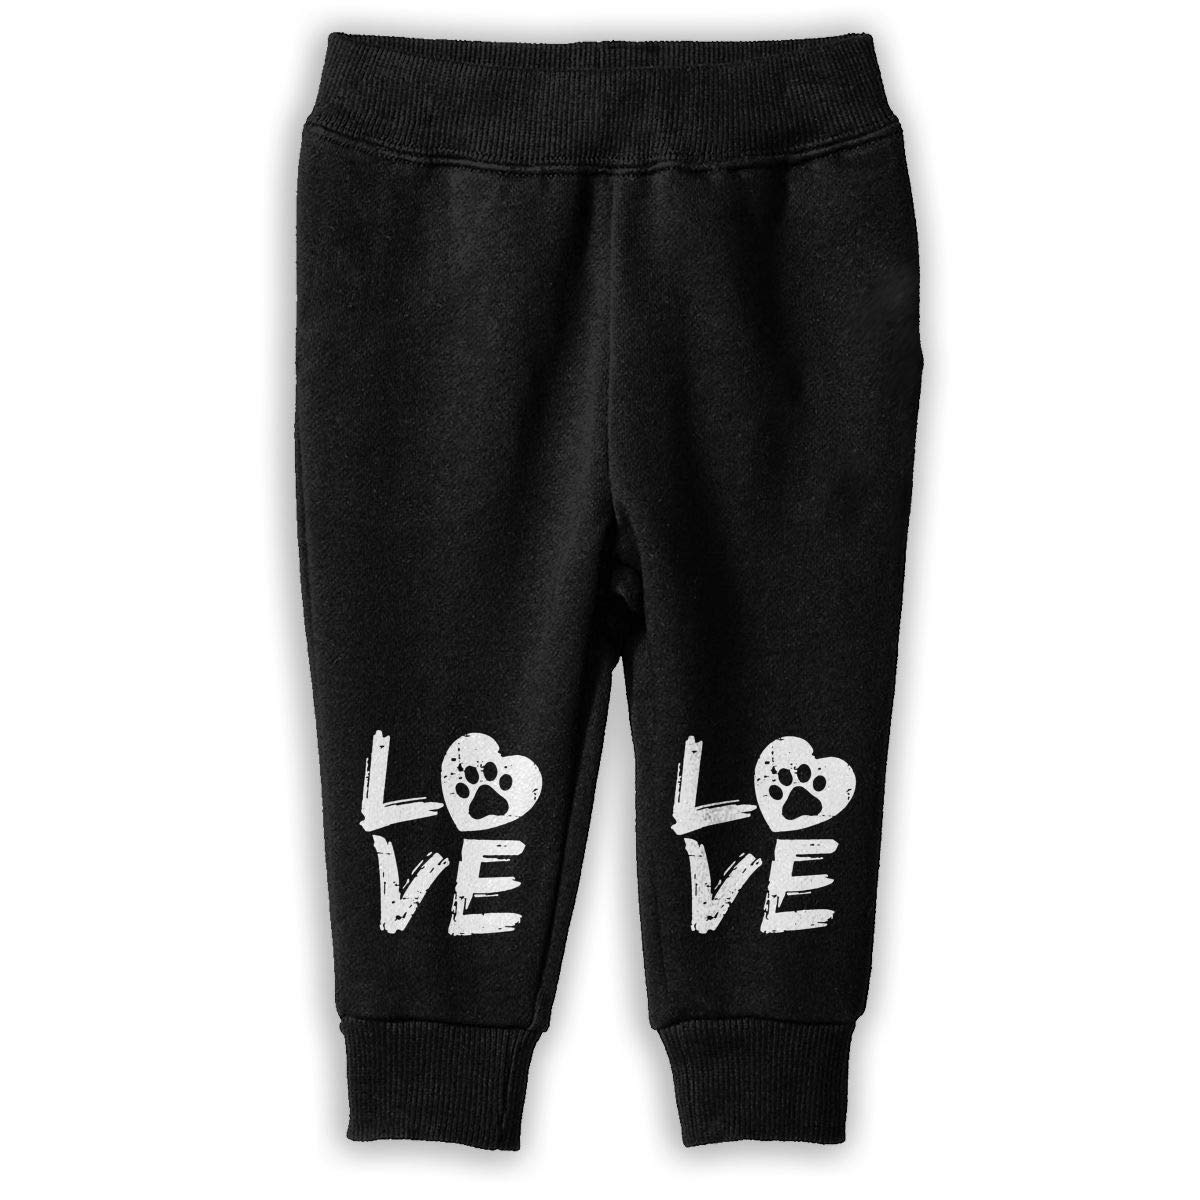 Toddler Sports Pants Love Paw Print in Heart Sweatpants